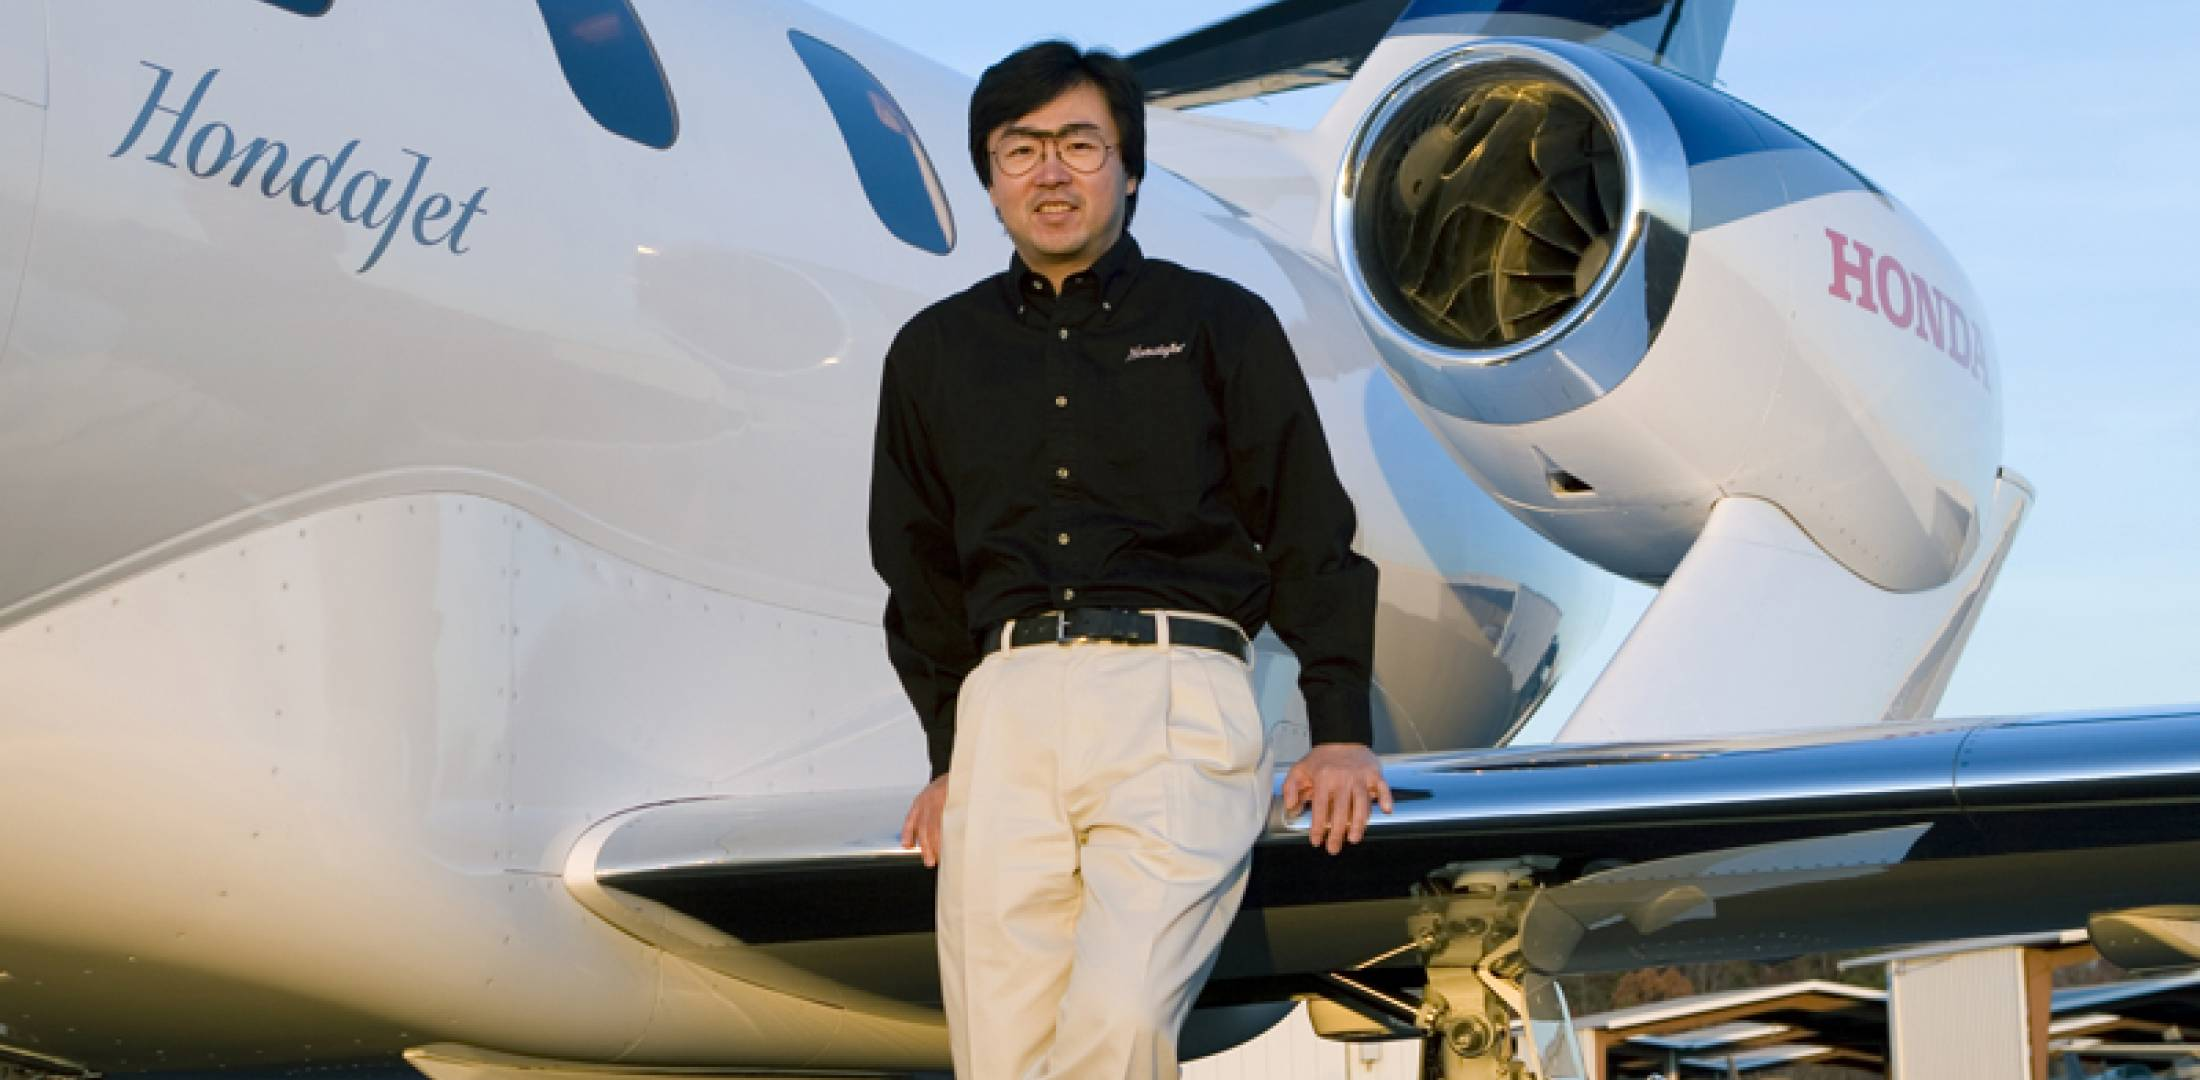 Honda Aircraft president and CEO Michimasa Fujino